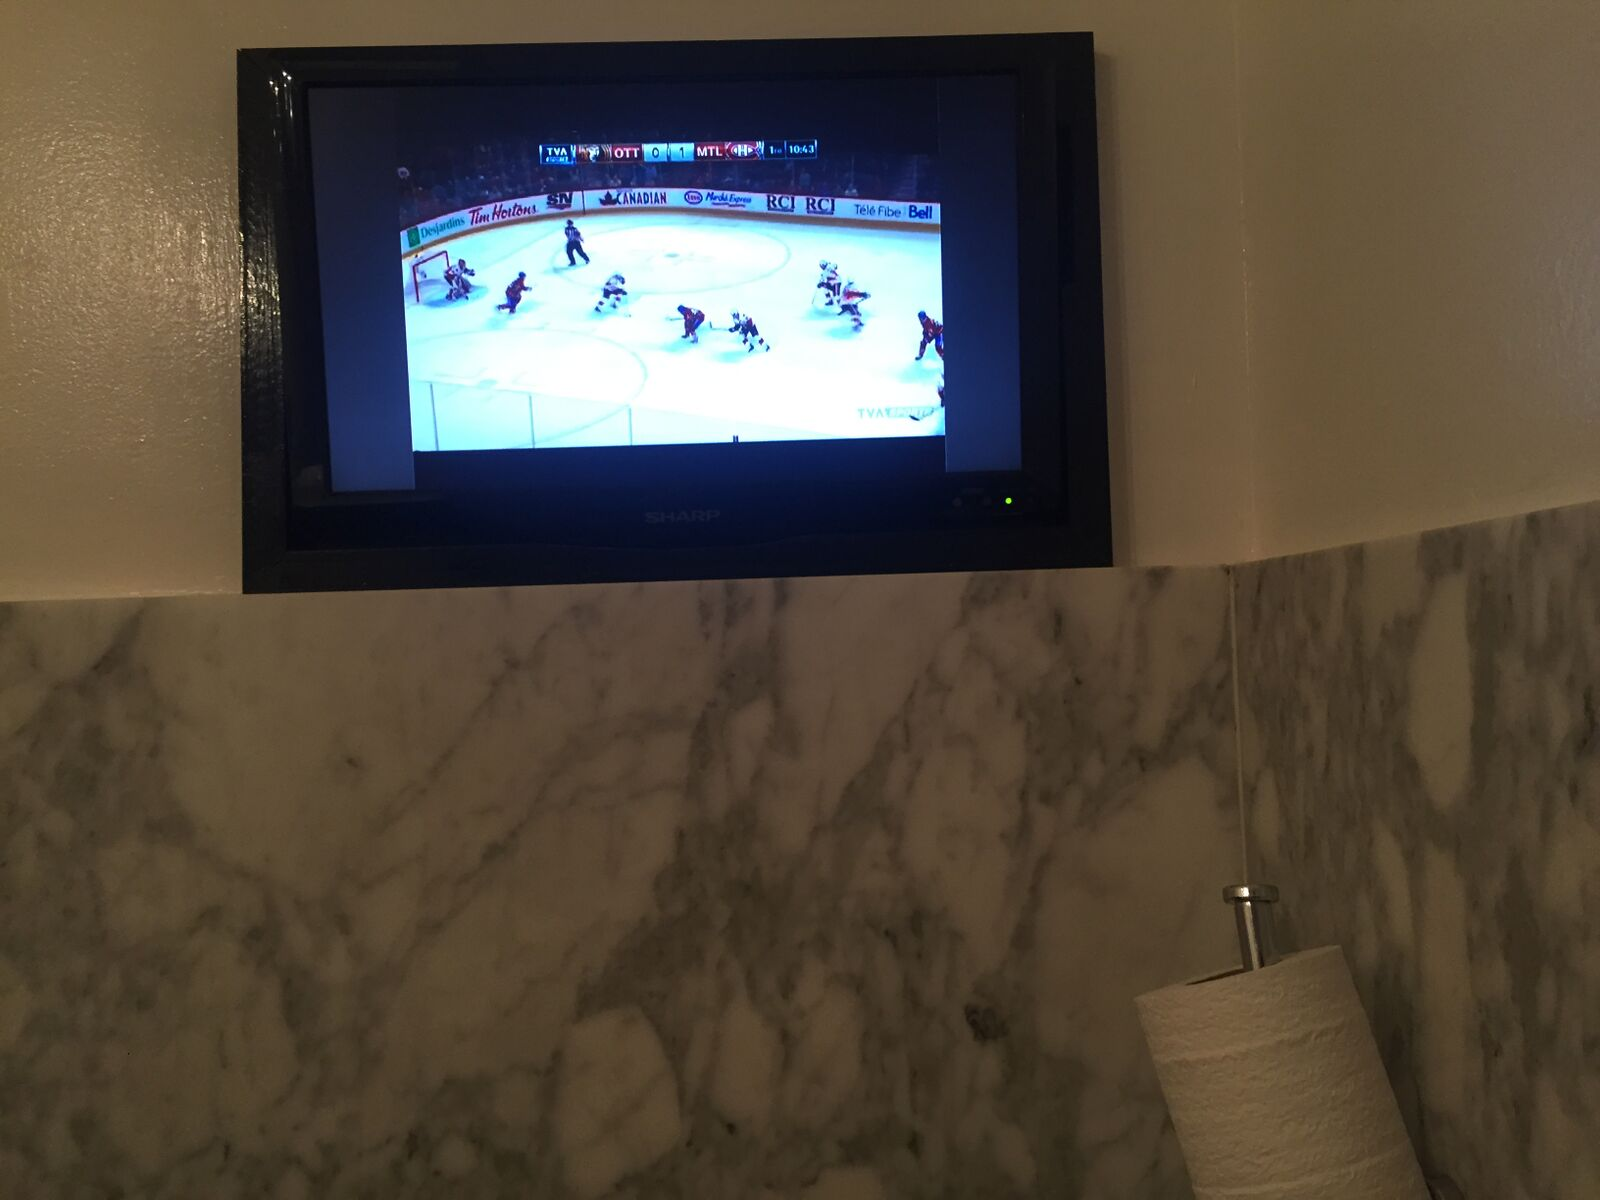 Also, shout out to Canadians for not wanting you to miss a minute of the v v important hockey game just because you've got to piss. Considerate AF